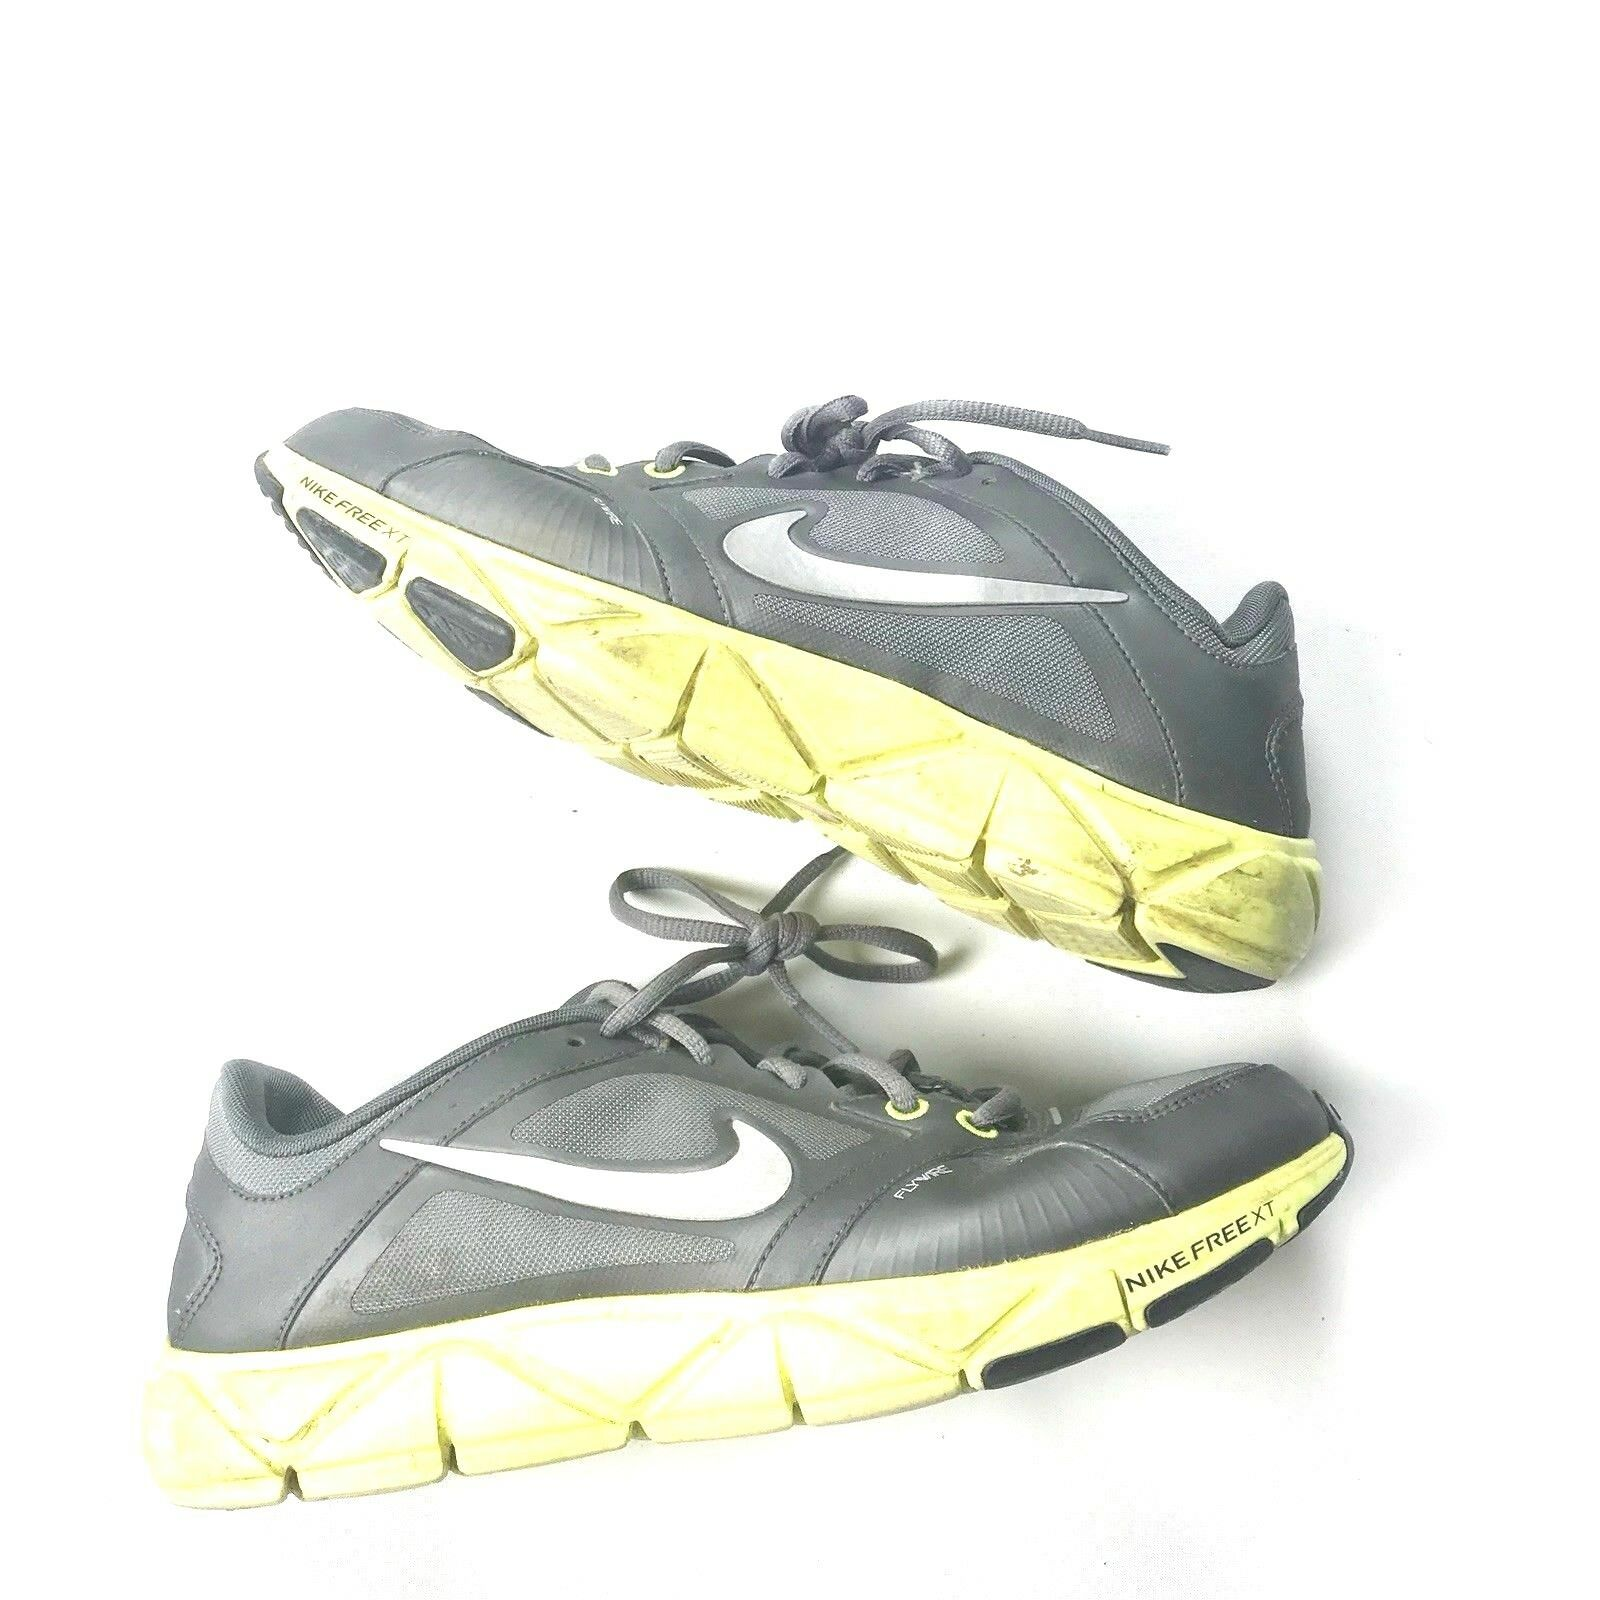 Nike Women's Flywire Nike Free XT Quick Fit Training Sneakers Comfortable Casual wild